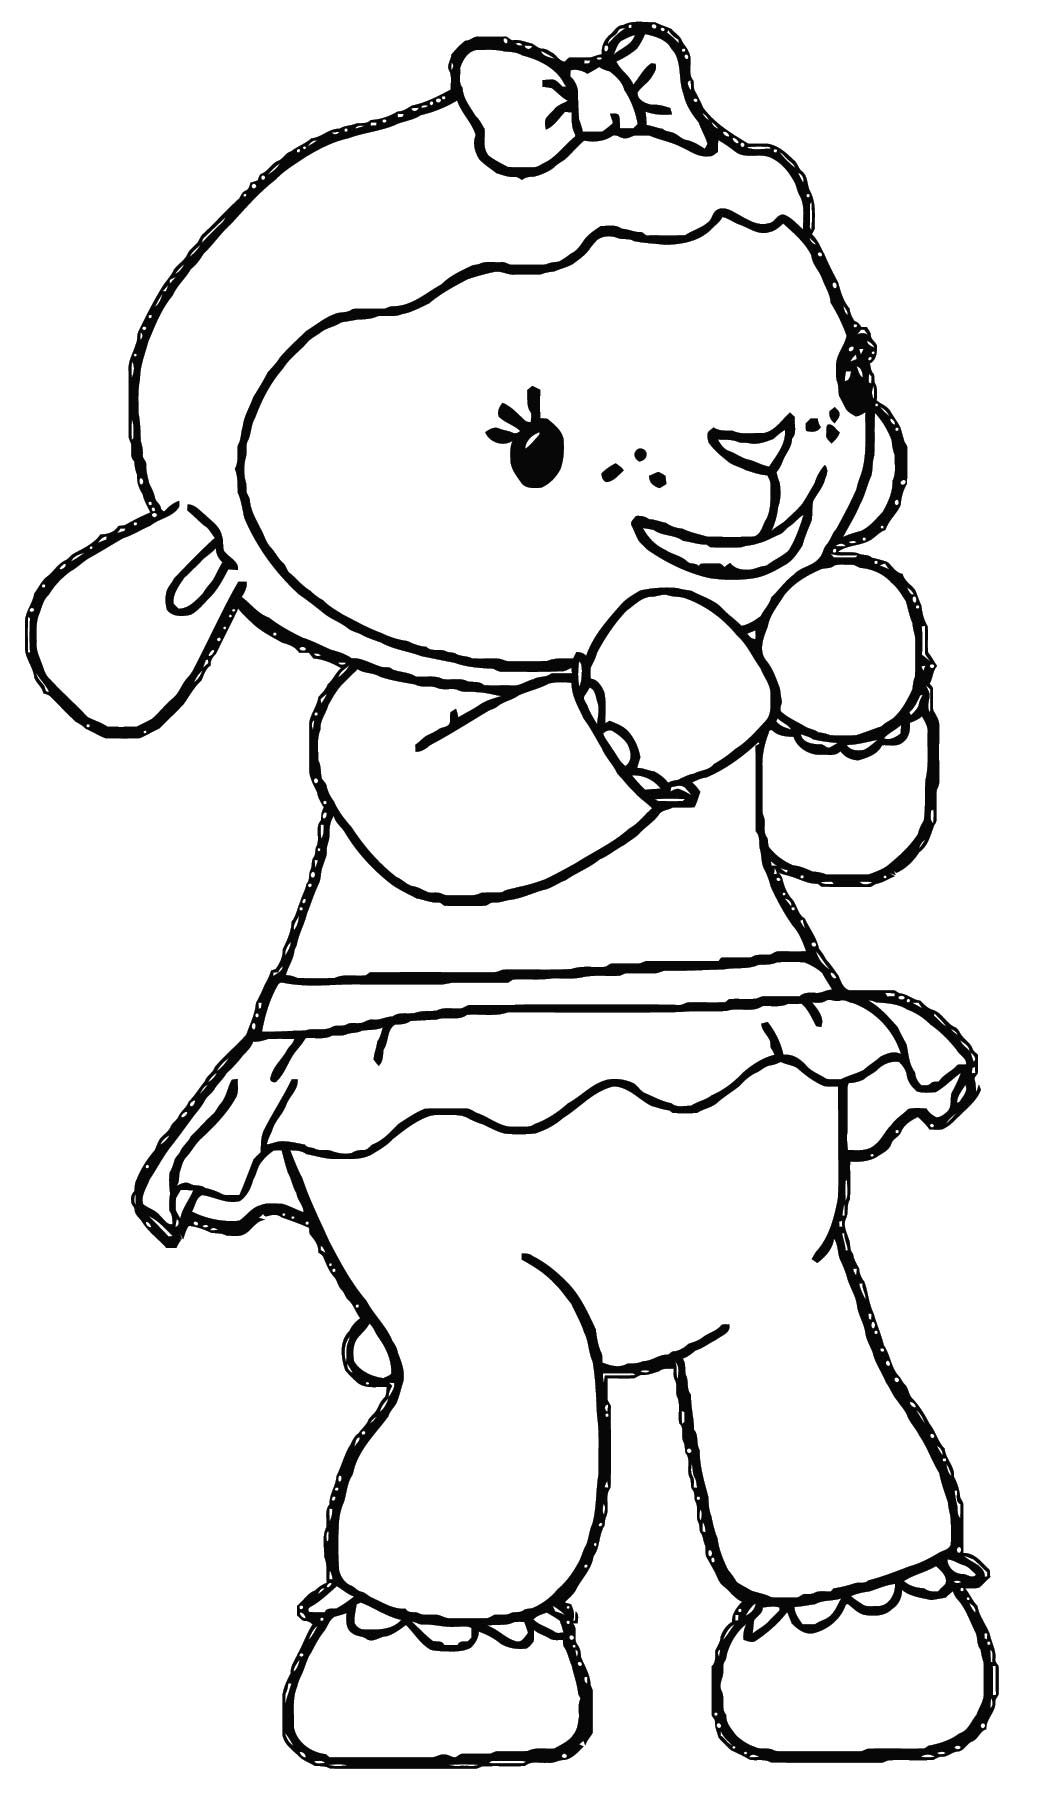 lambie 2 coloring page